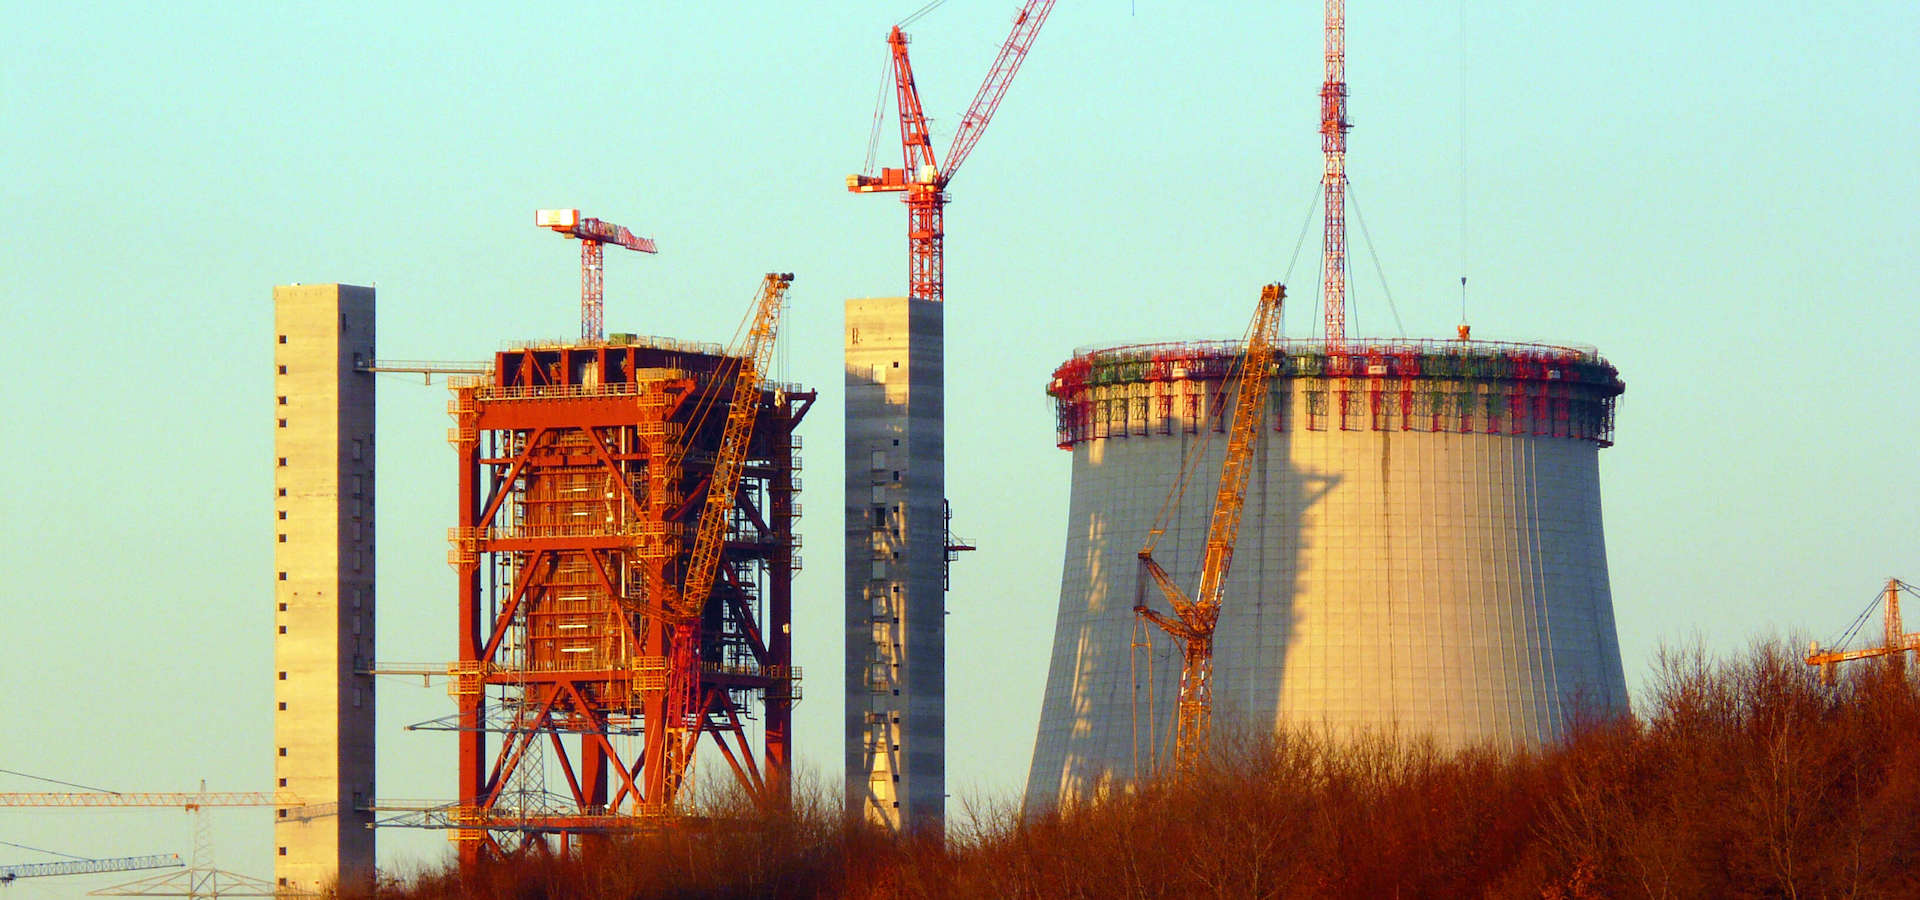 The towers of the last coal plant in Germany? Kraftwerk Datteln (Photo by Don Geochotte, edited, CC BY-SA 3.0)